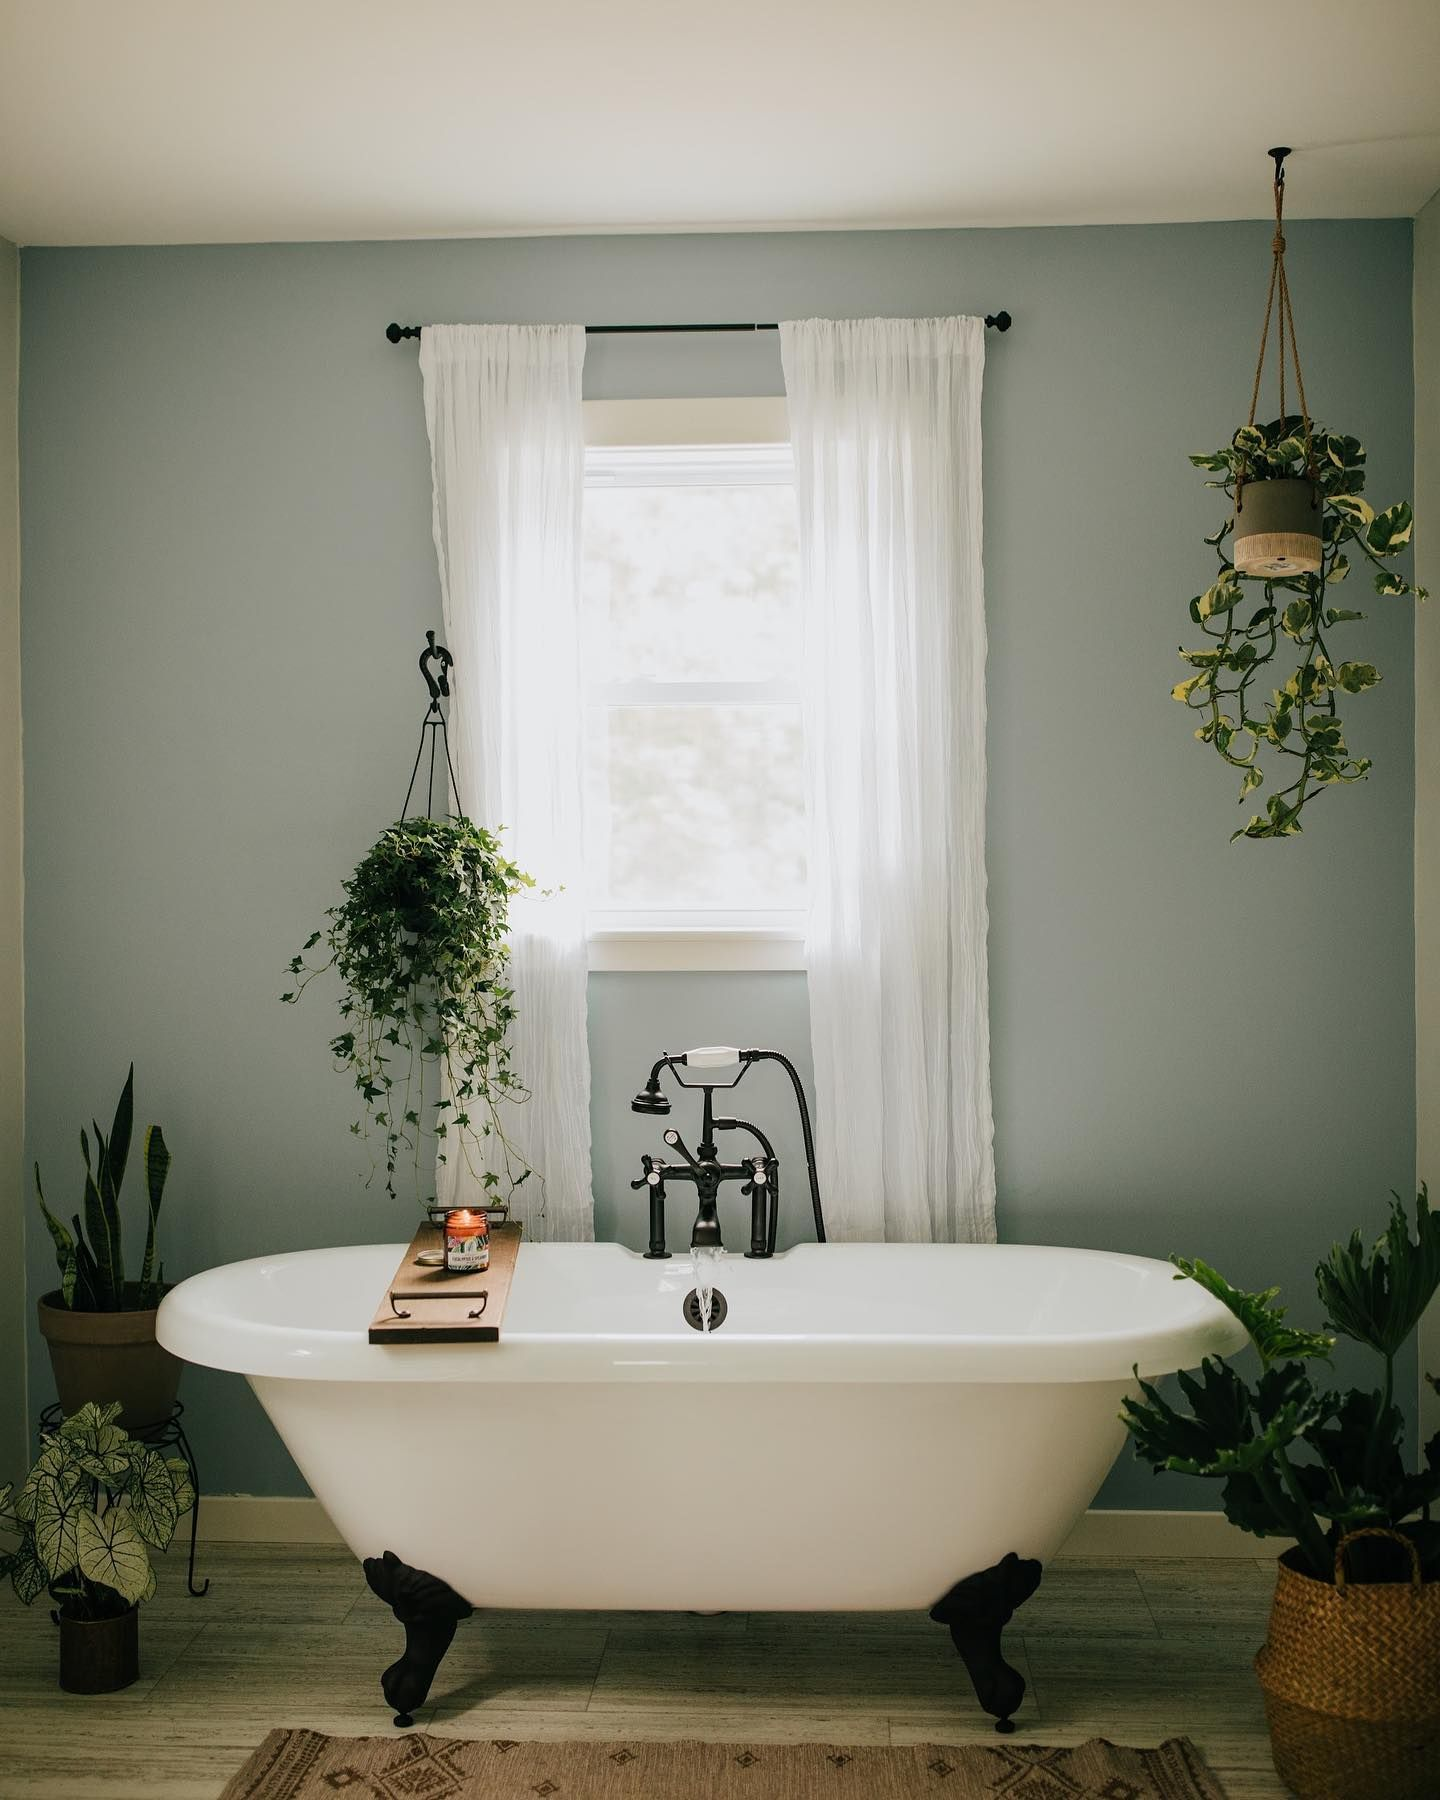 Cambridge Cast Iron Double Ended Claw Tub - Rim Drillings